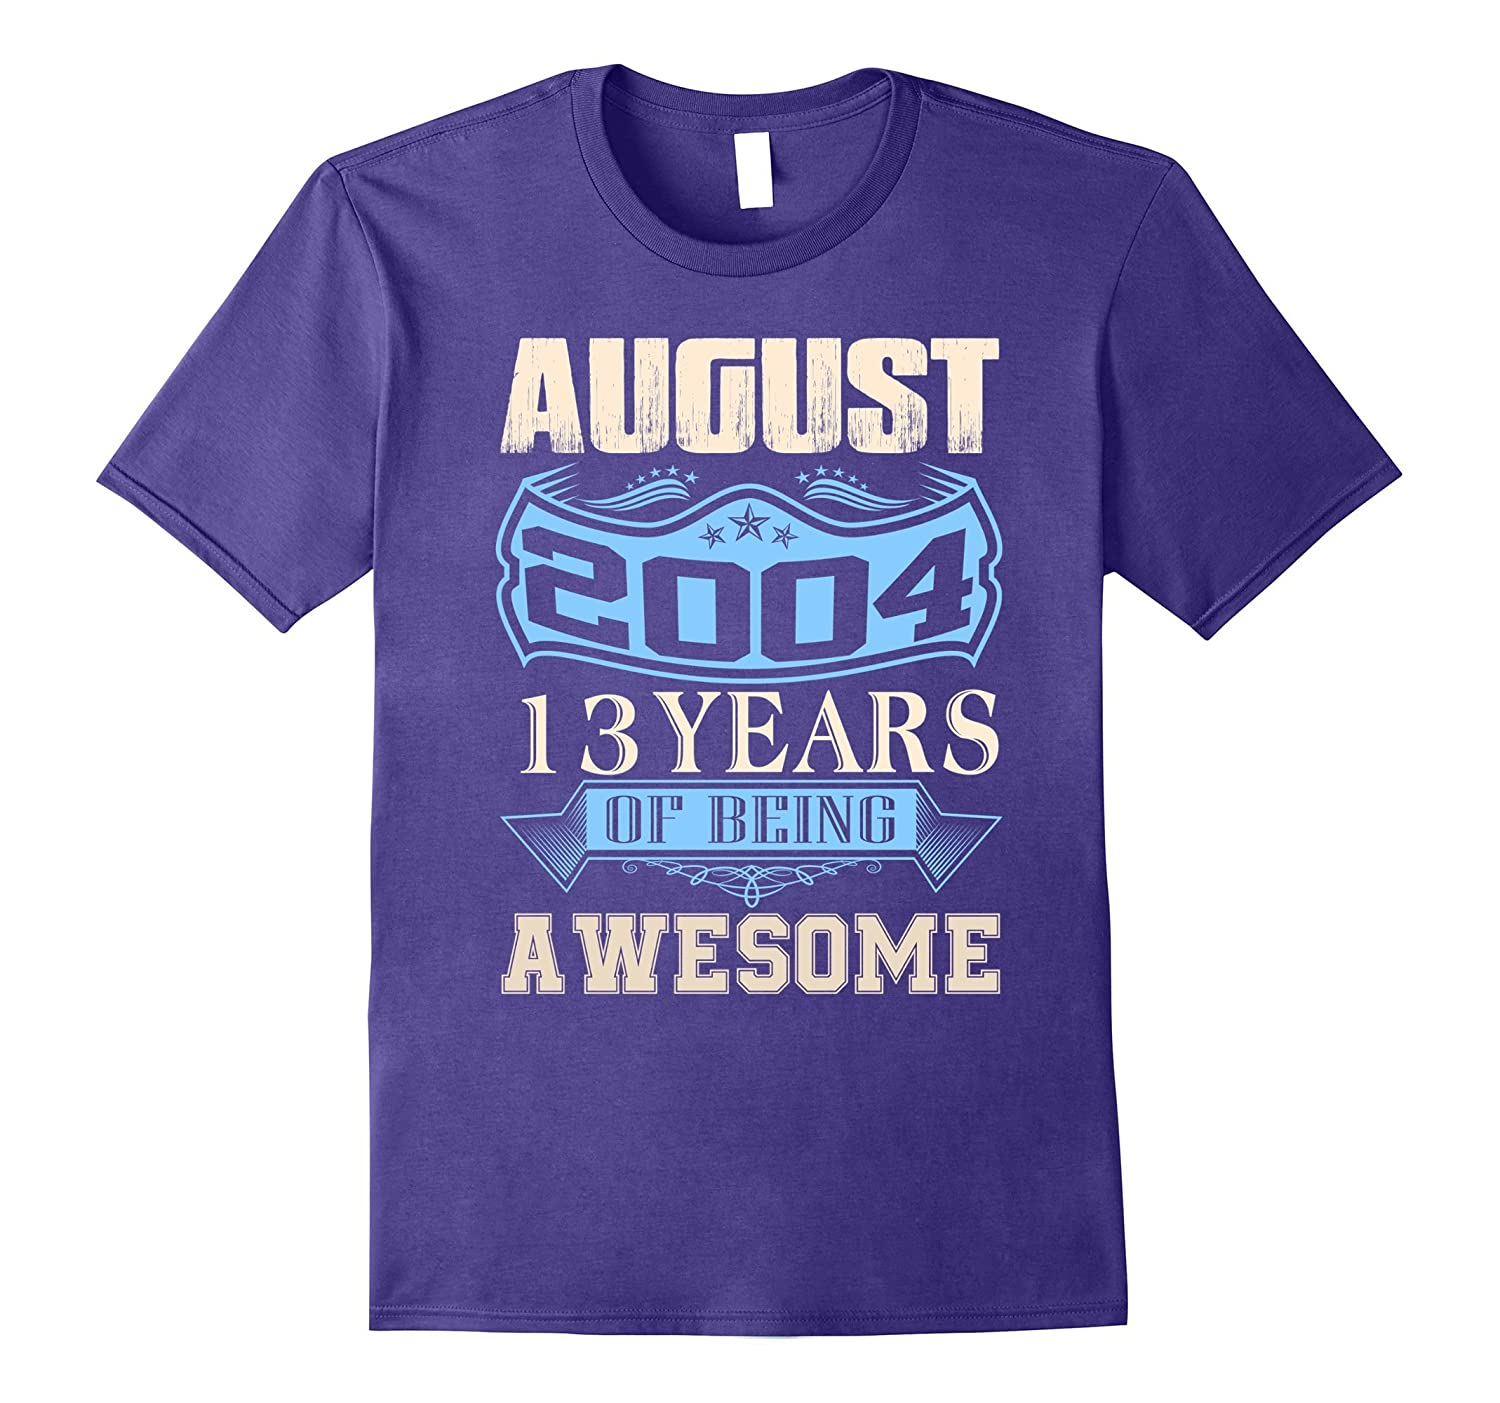 13 years of being awesome - Born in August 2004 Tshirt-Art